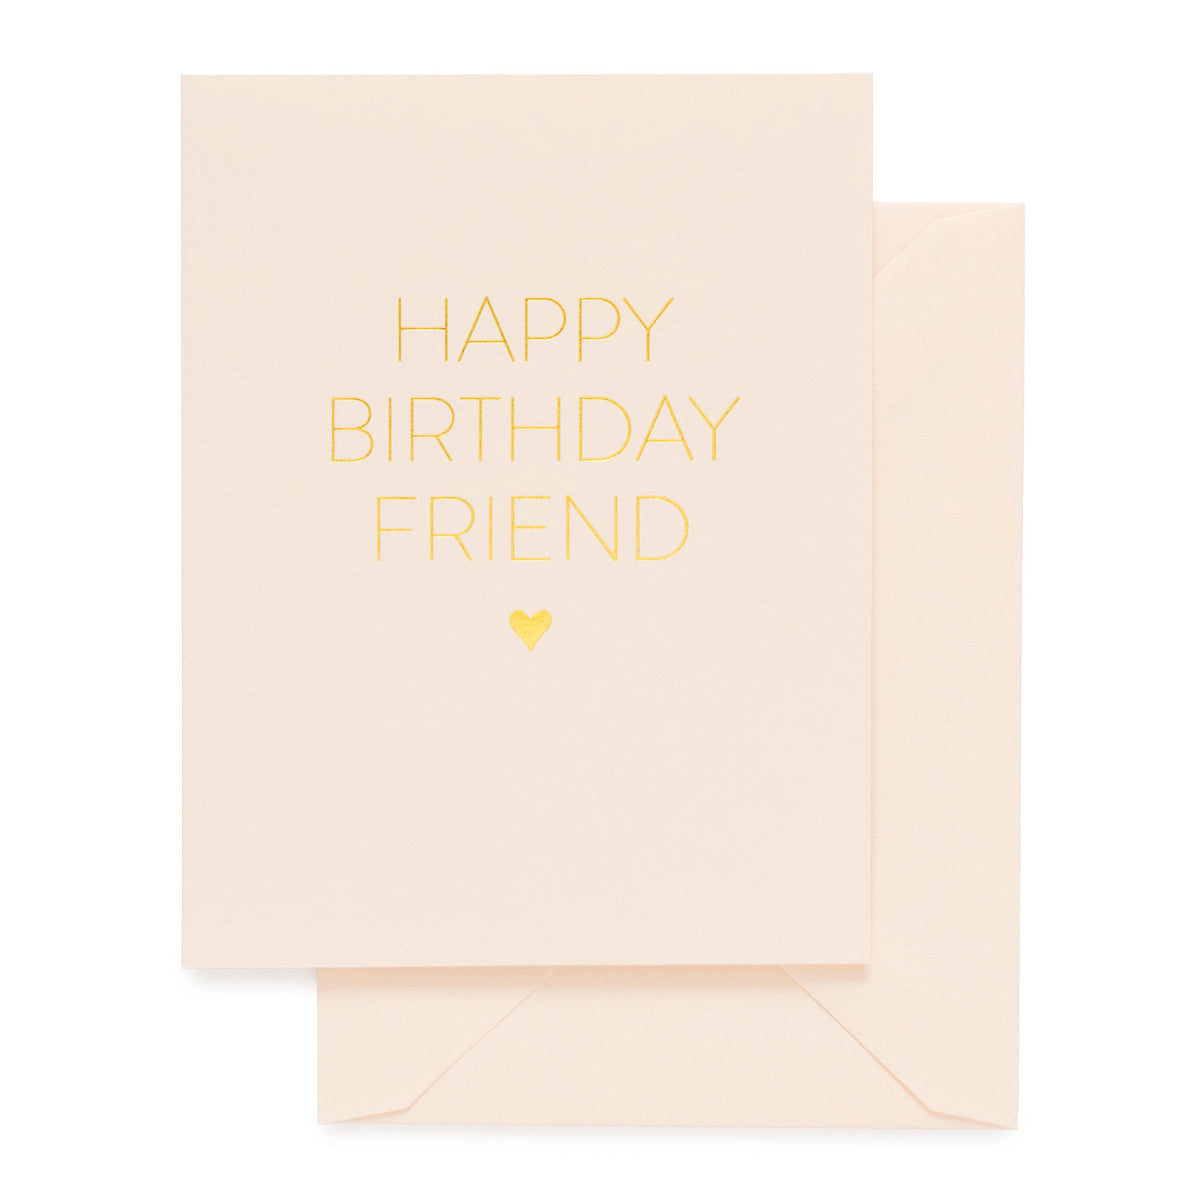 Pale pink and gold birthday card